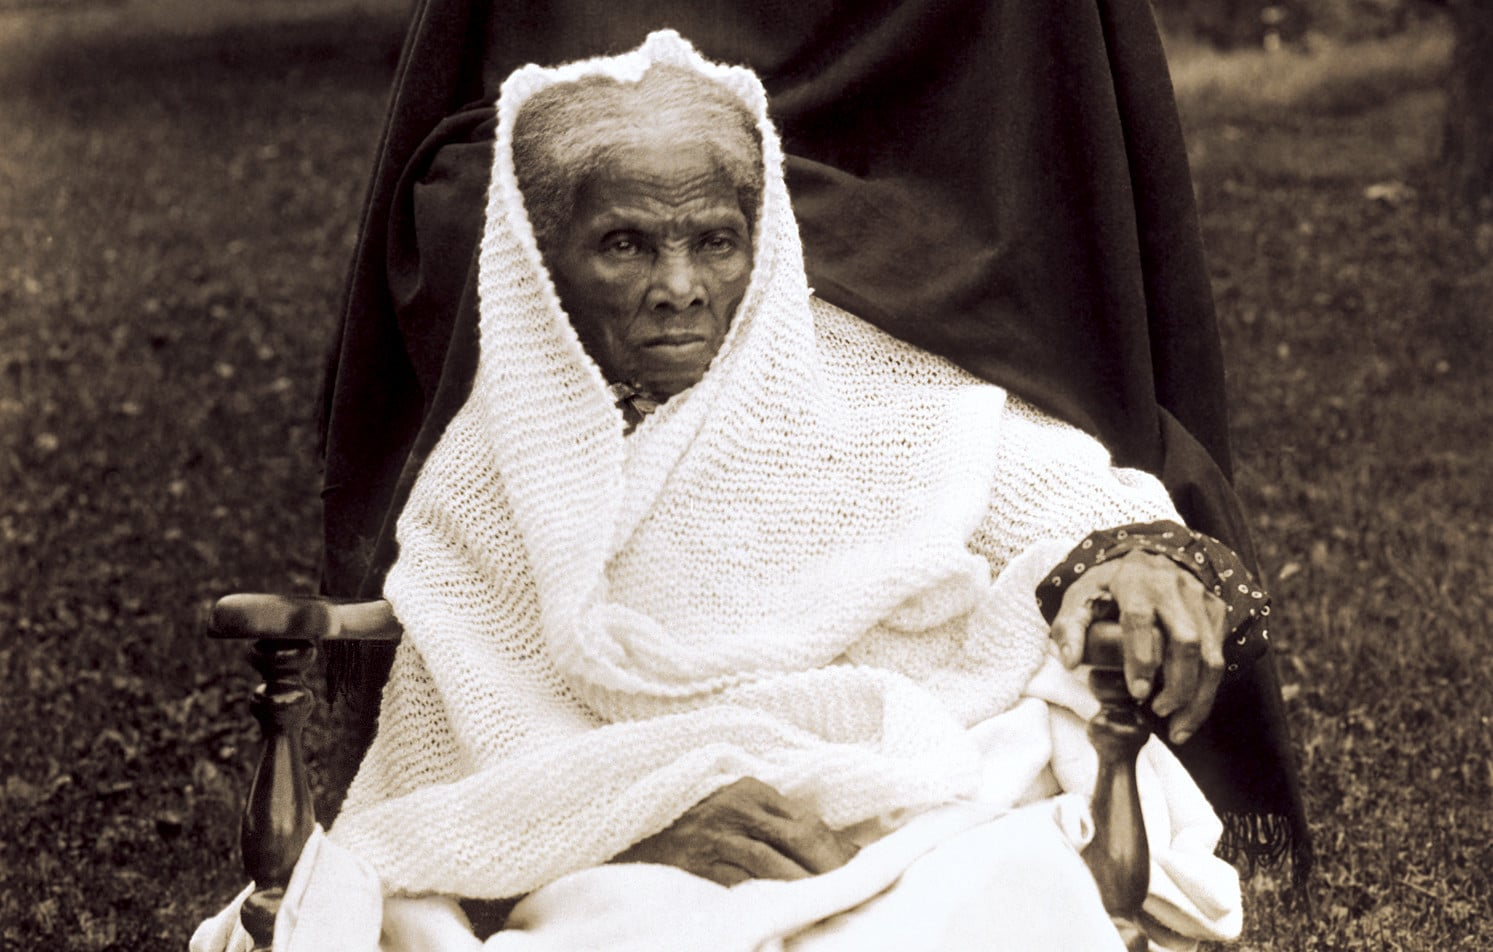 a biography of harriet tubman an american slave from the 19th century Candy123456's 19th century american hero--harriet tubman my 19th century american hero is harriet tubman harriet tubman was born into slavery.